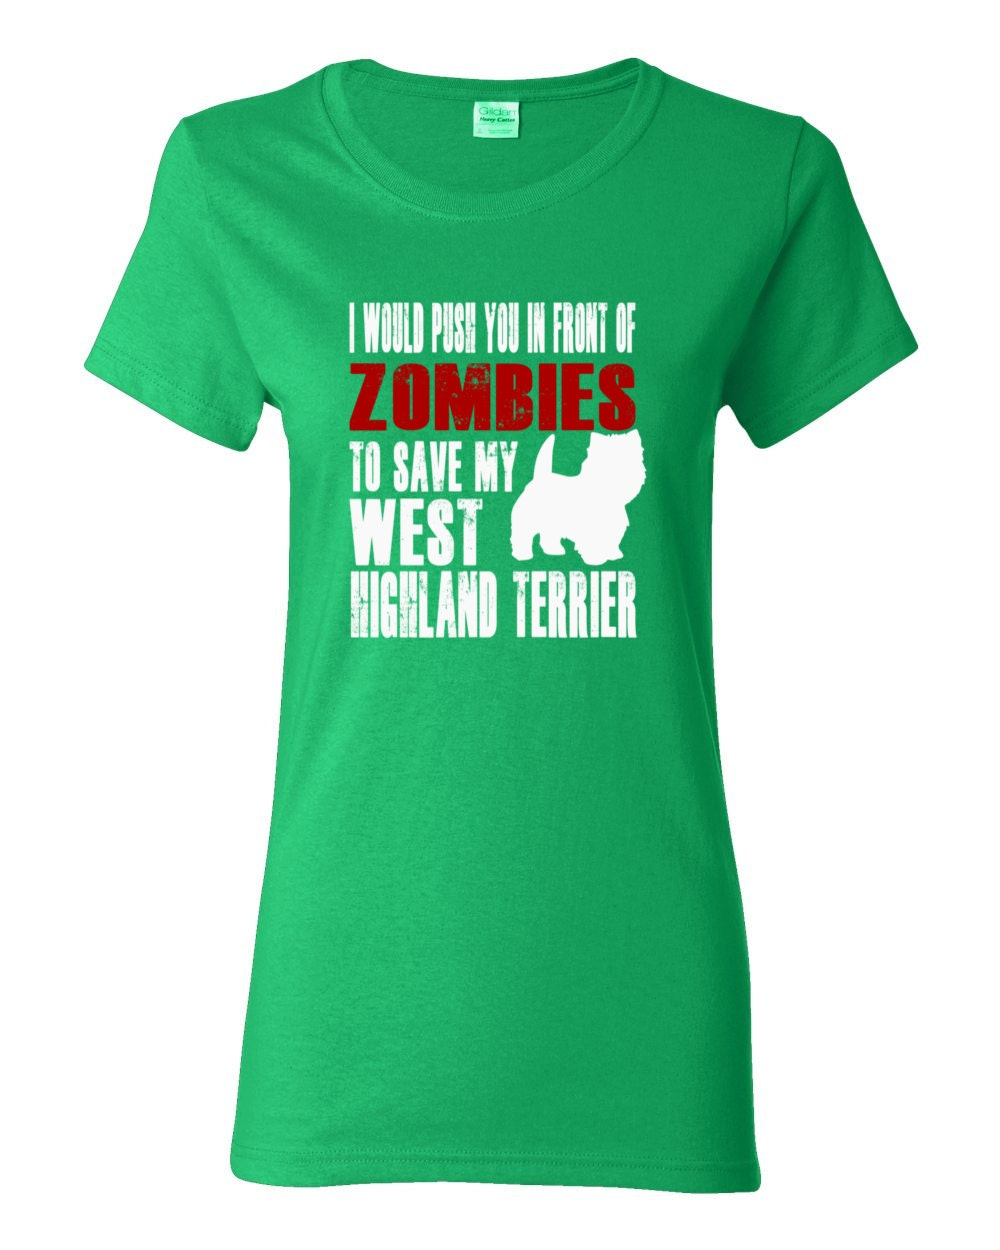 West Highland Terrier Womens Shirt - I Would Push You In Front Of Zombies To Save My West Highland Terrier - My Dog Westie Womens T-shirt